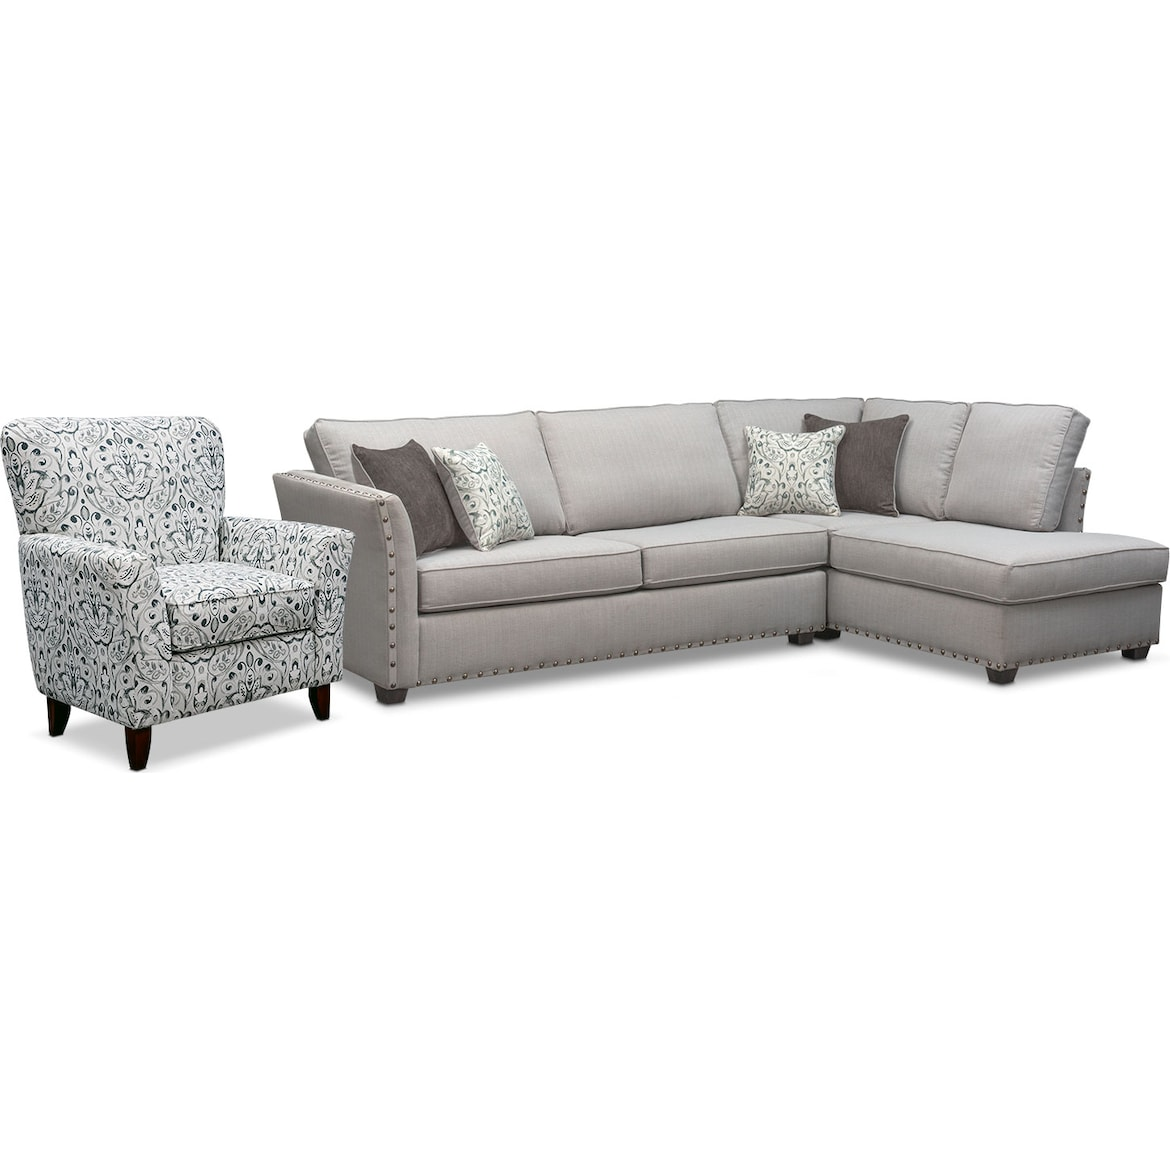 Set Of 2 Living Room Accent Chairs.Mckenna 2 Piece Sleeper Sectional And Accent Chair Set